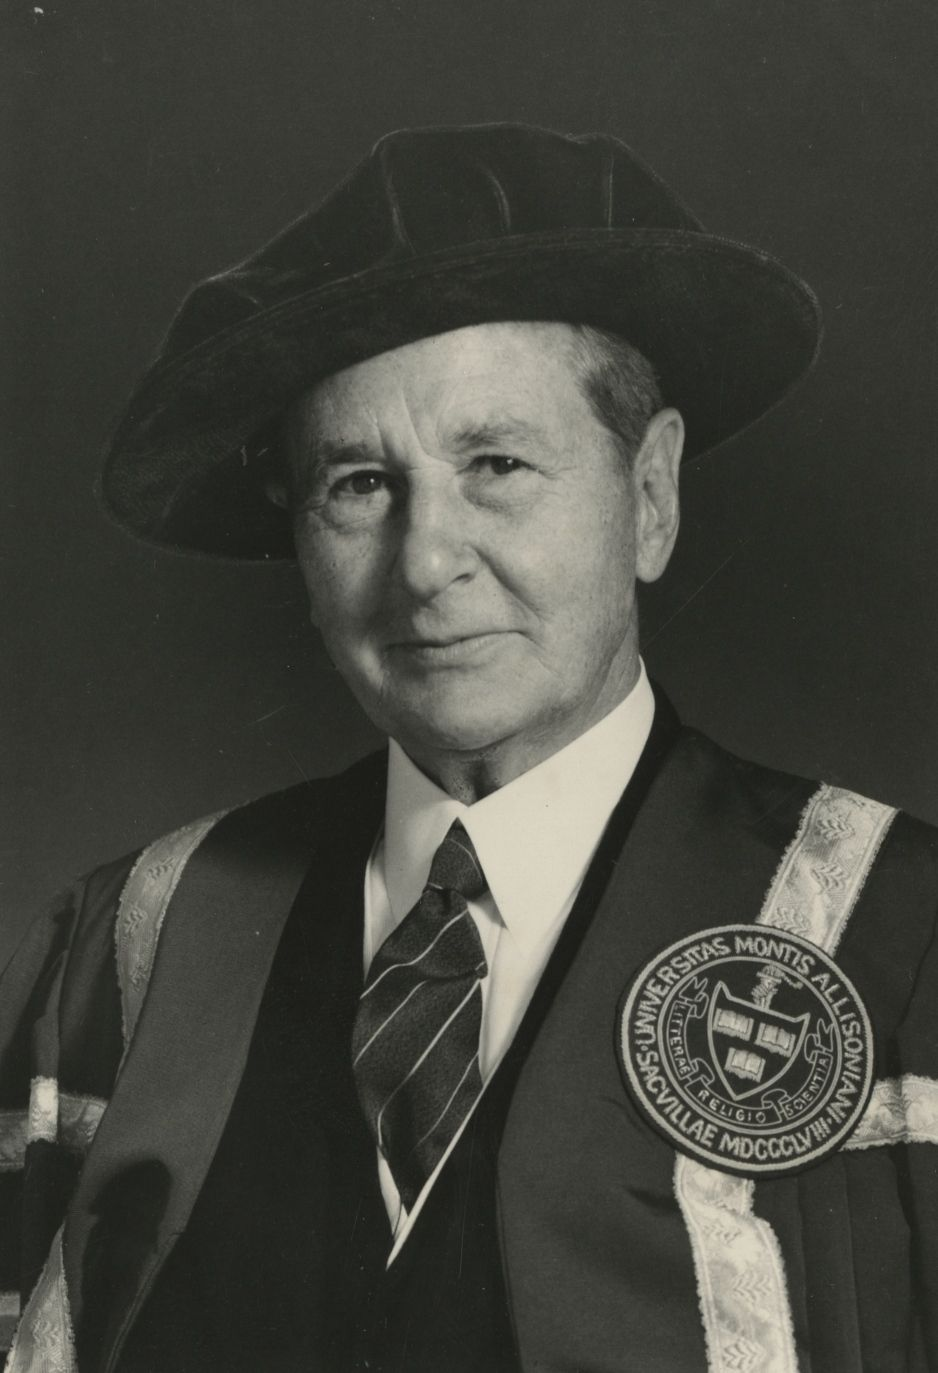 Ralph Pickard Bell in his chancellor robes.